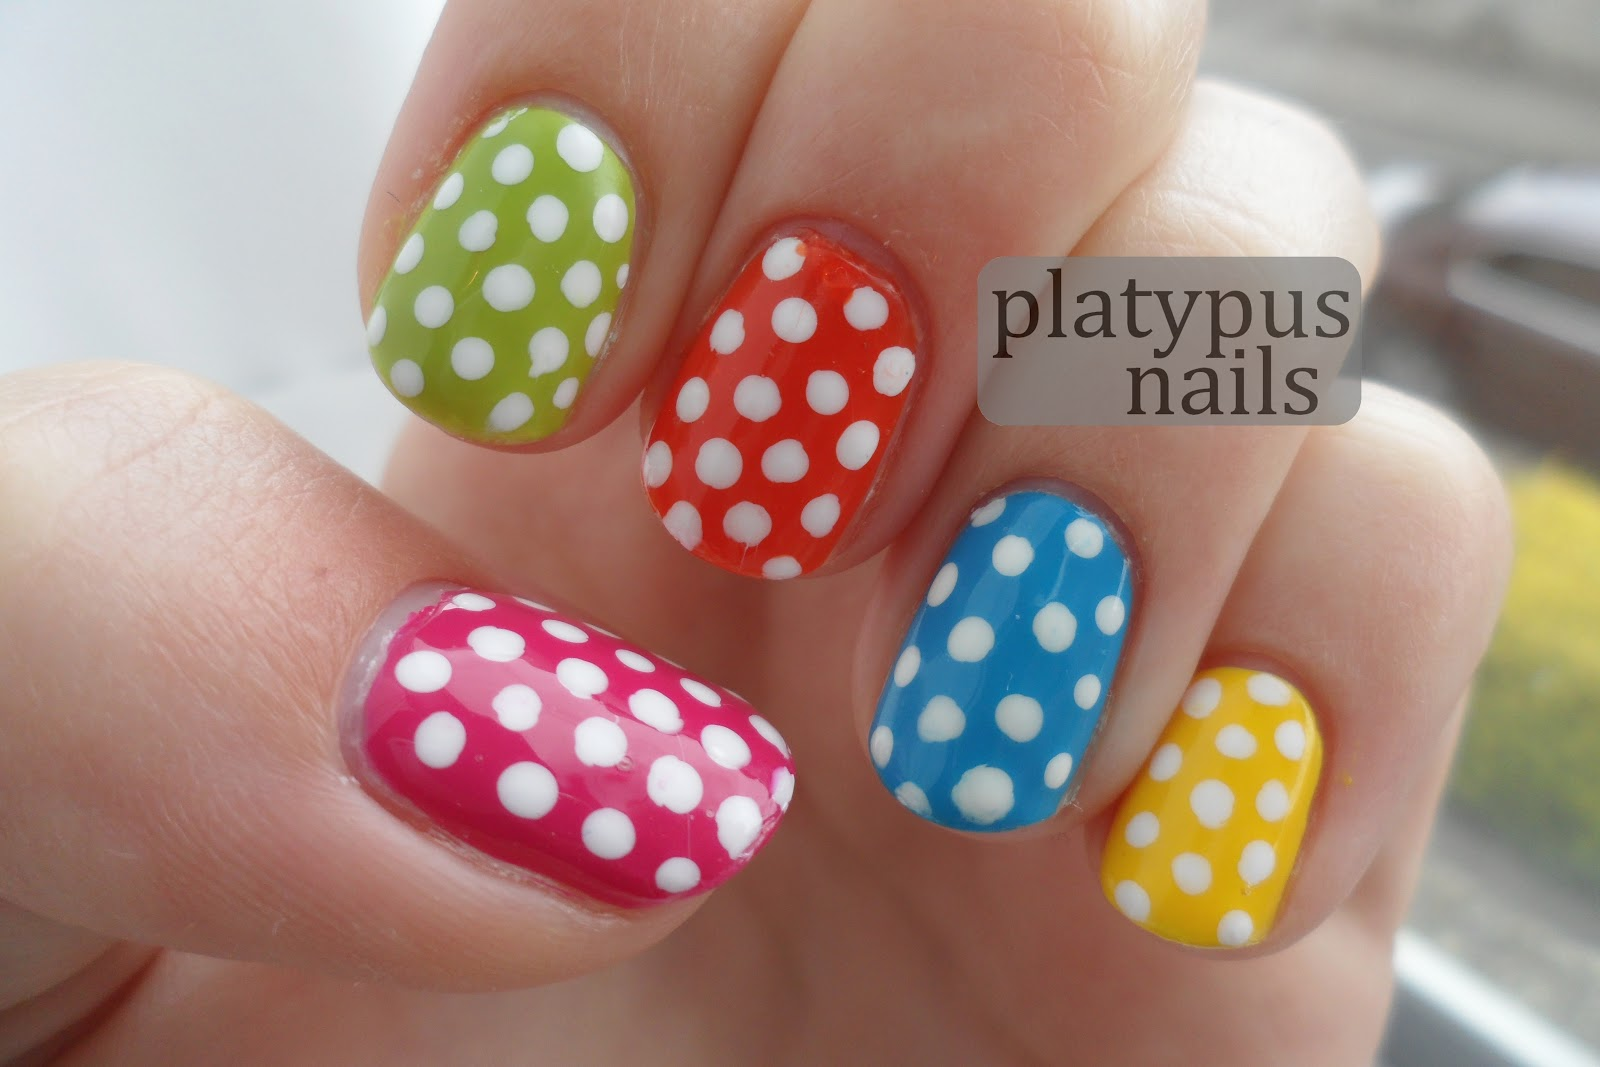 loonyplatypus: [nails] Day 11